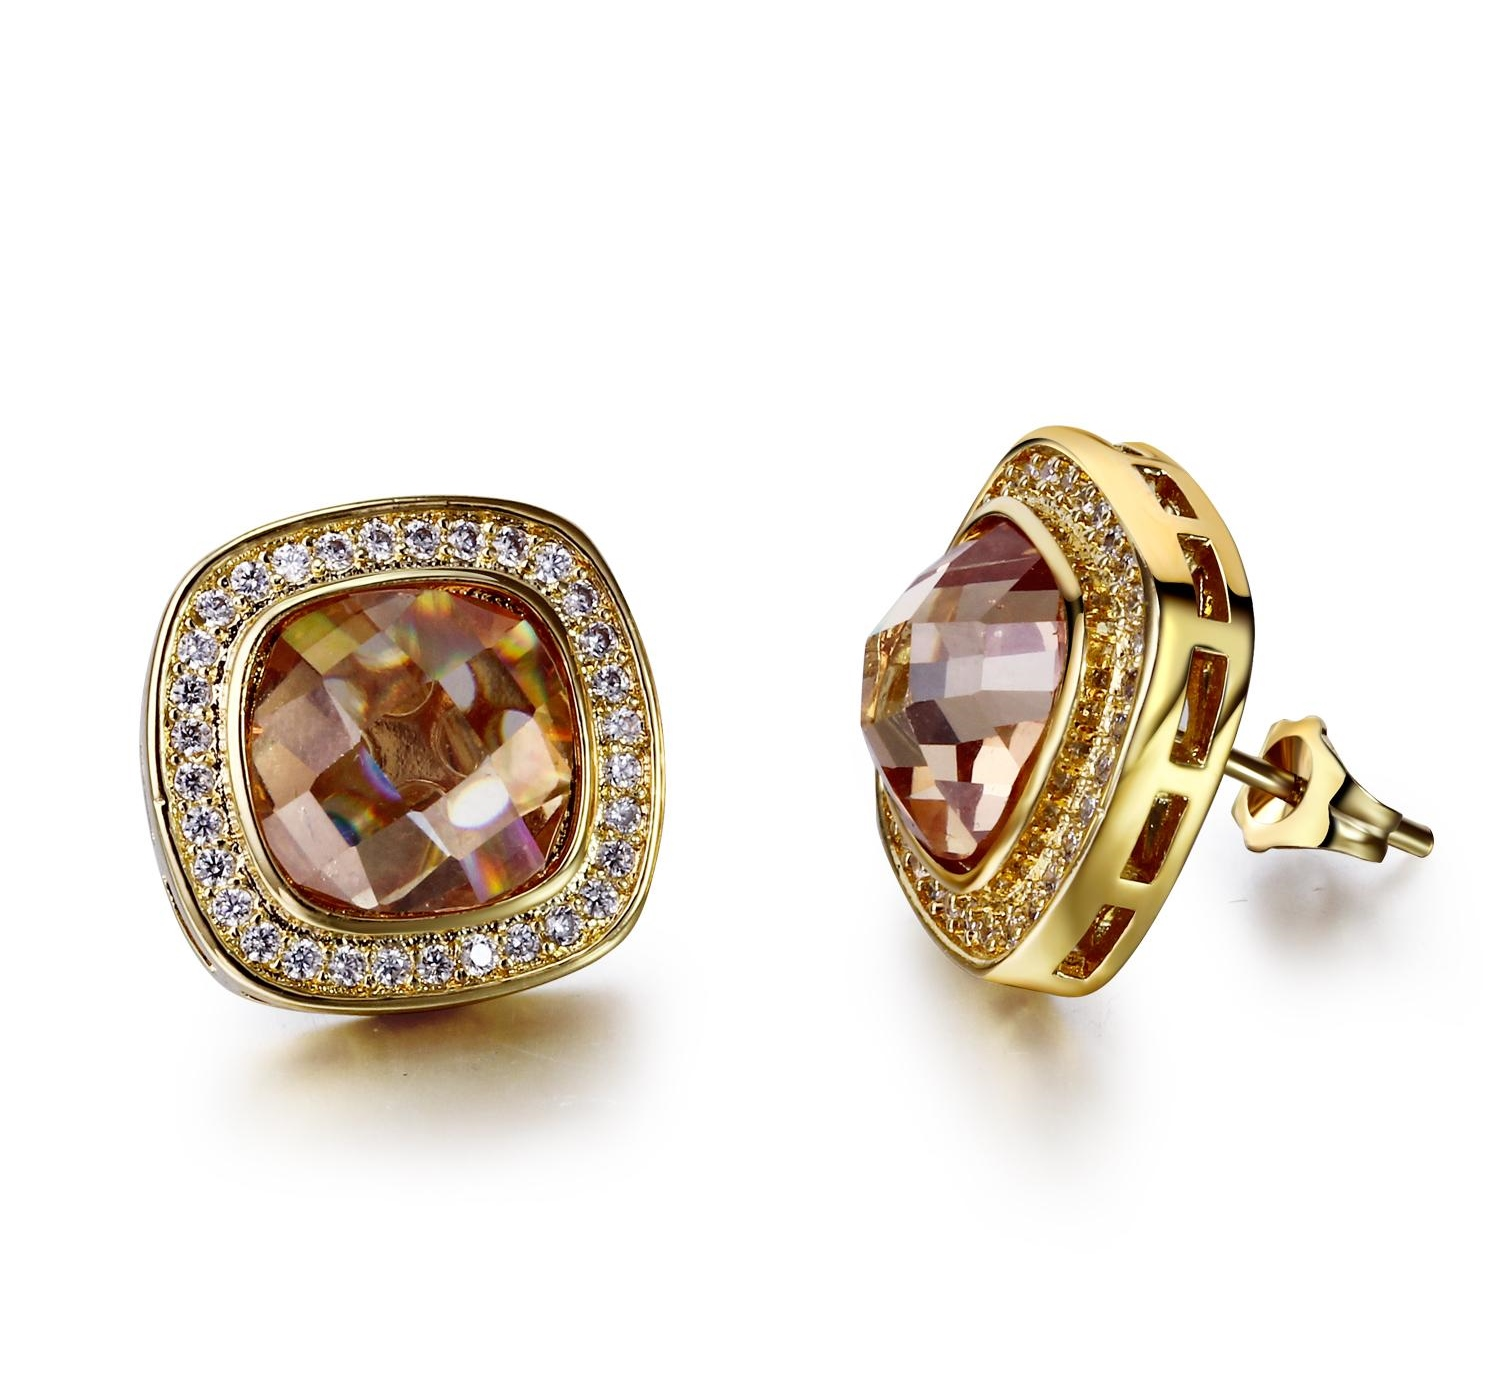 New Fashion Square Earrings In Cubic Zirconia Stones18k Gold Plated Earrings